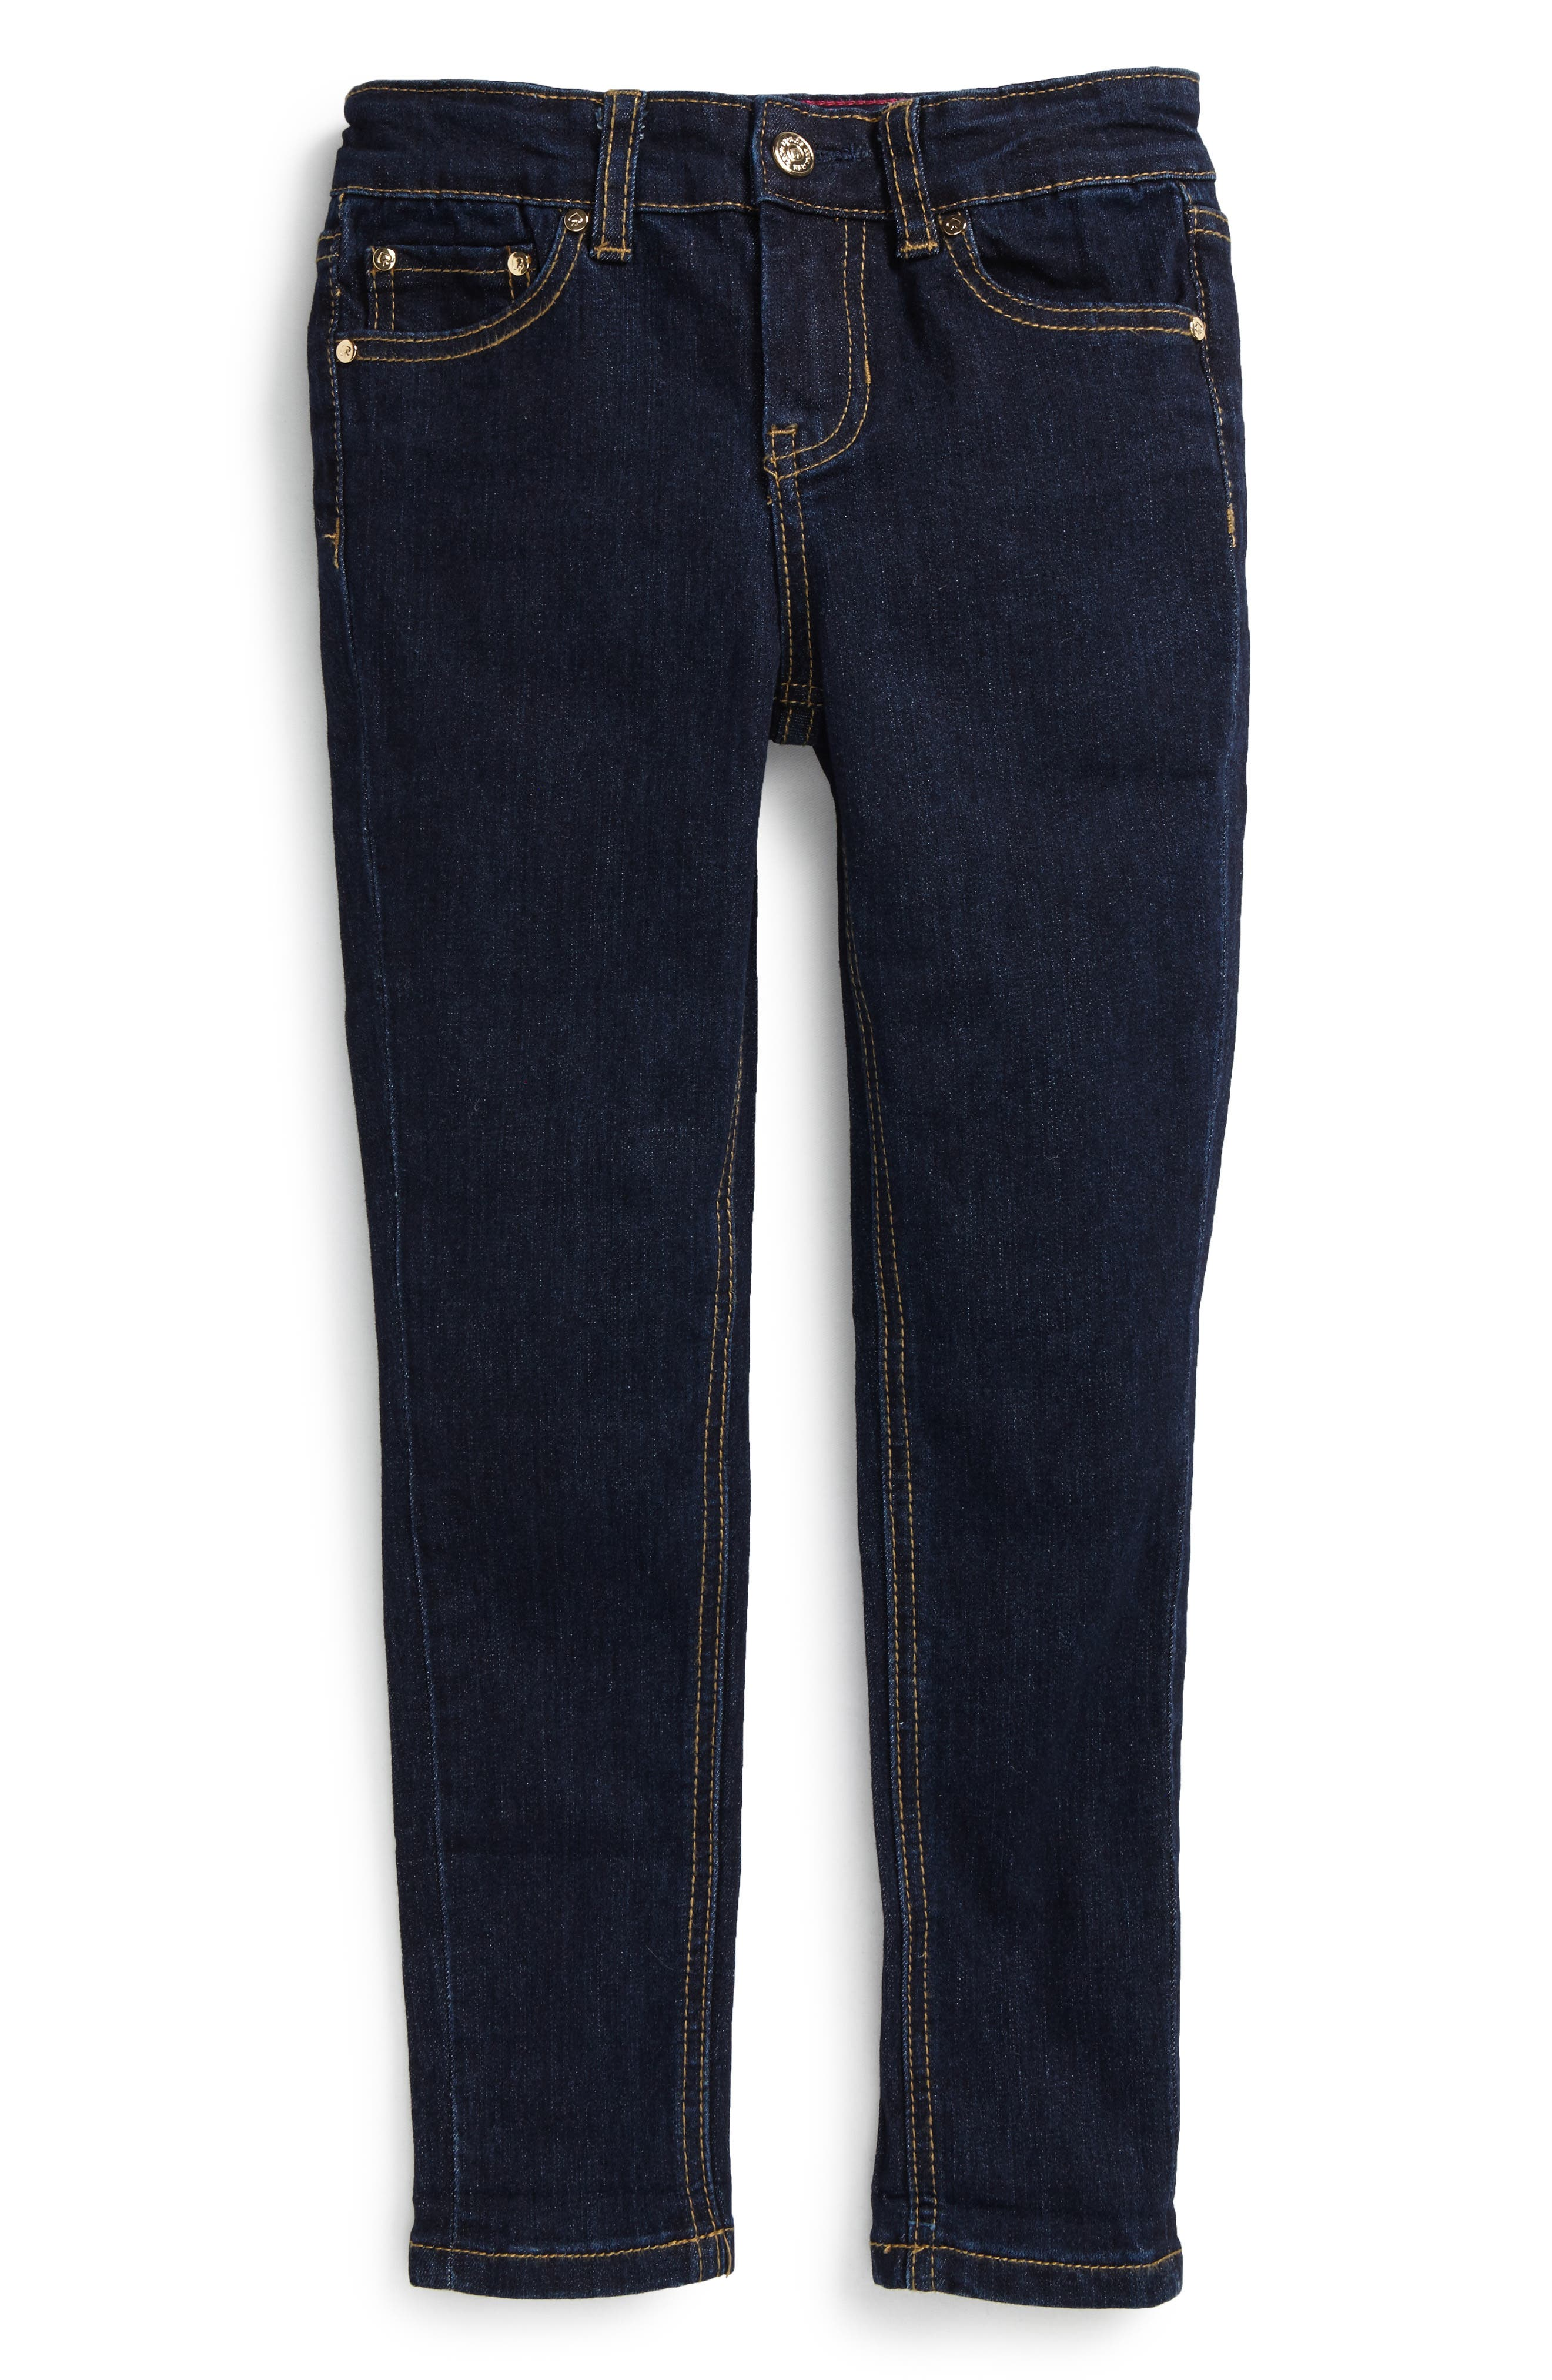 kate spade new york skinny stretch jeans (Toddler Girls & Little Girls)